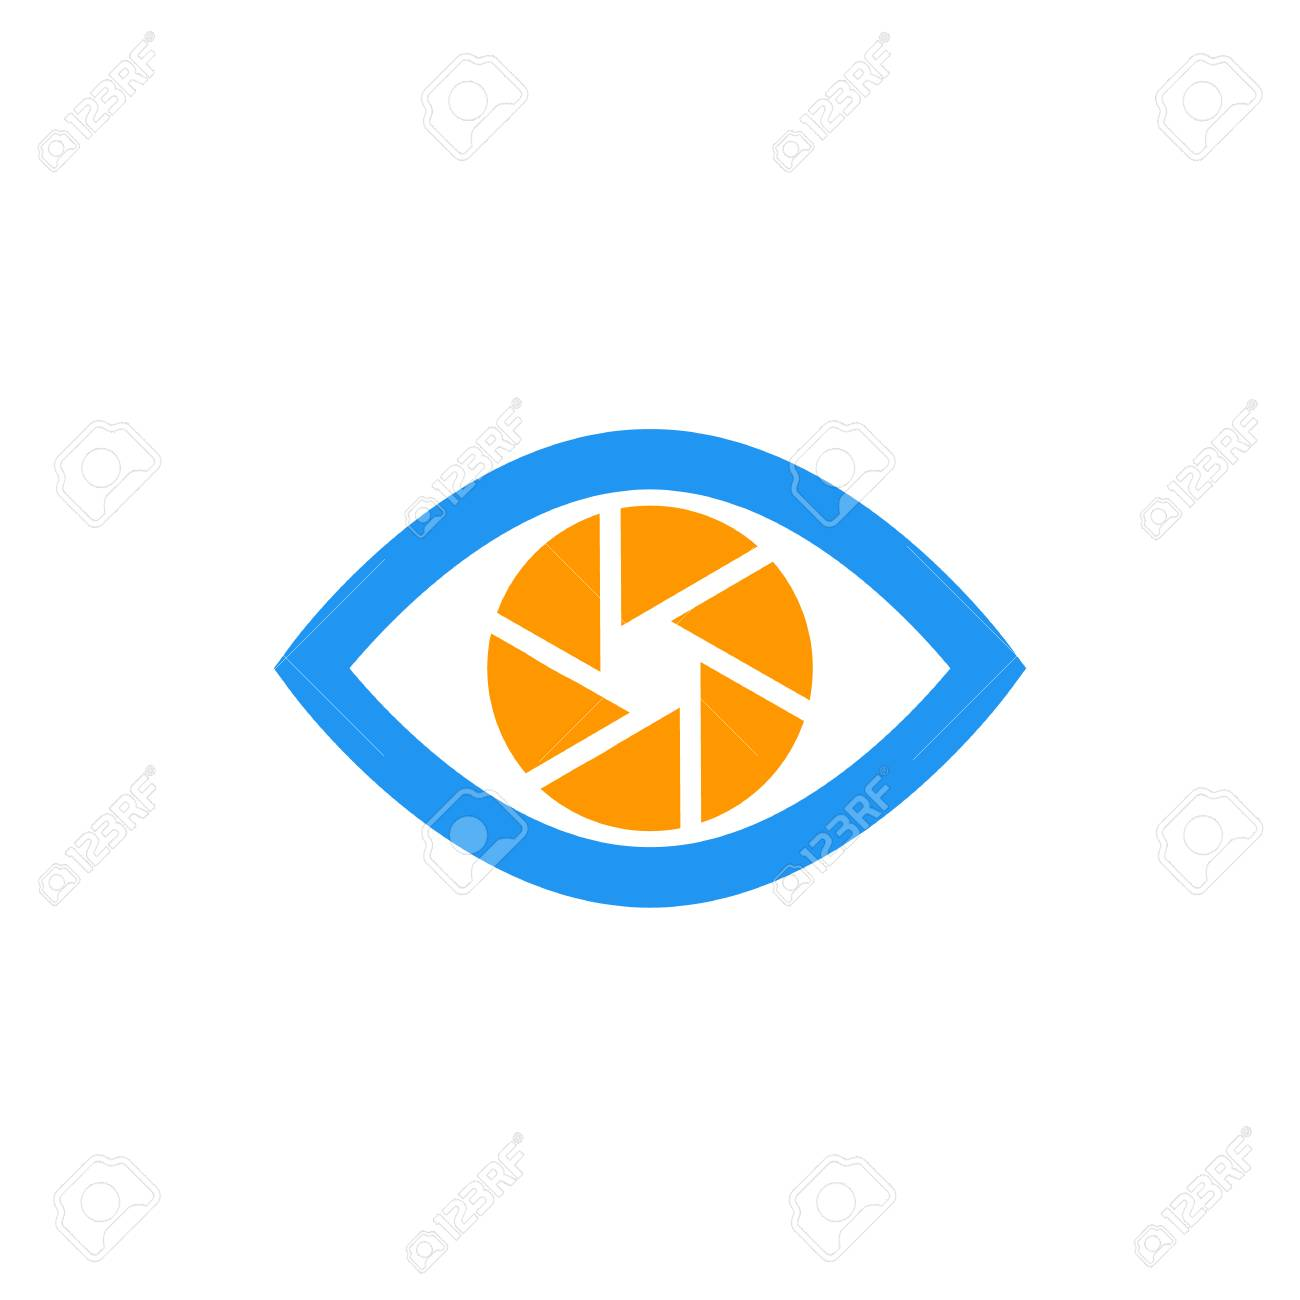 eye with aperture symbol, vector icon on white - 89552919